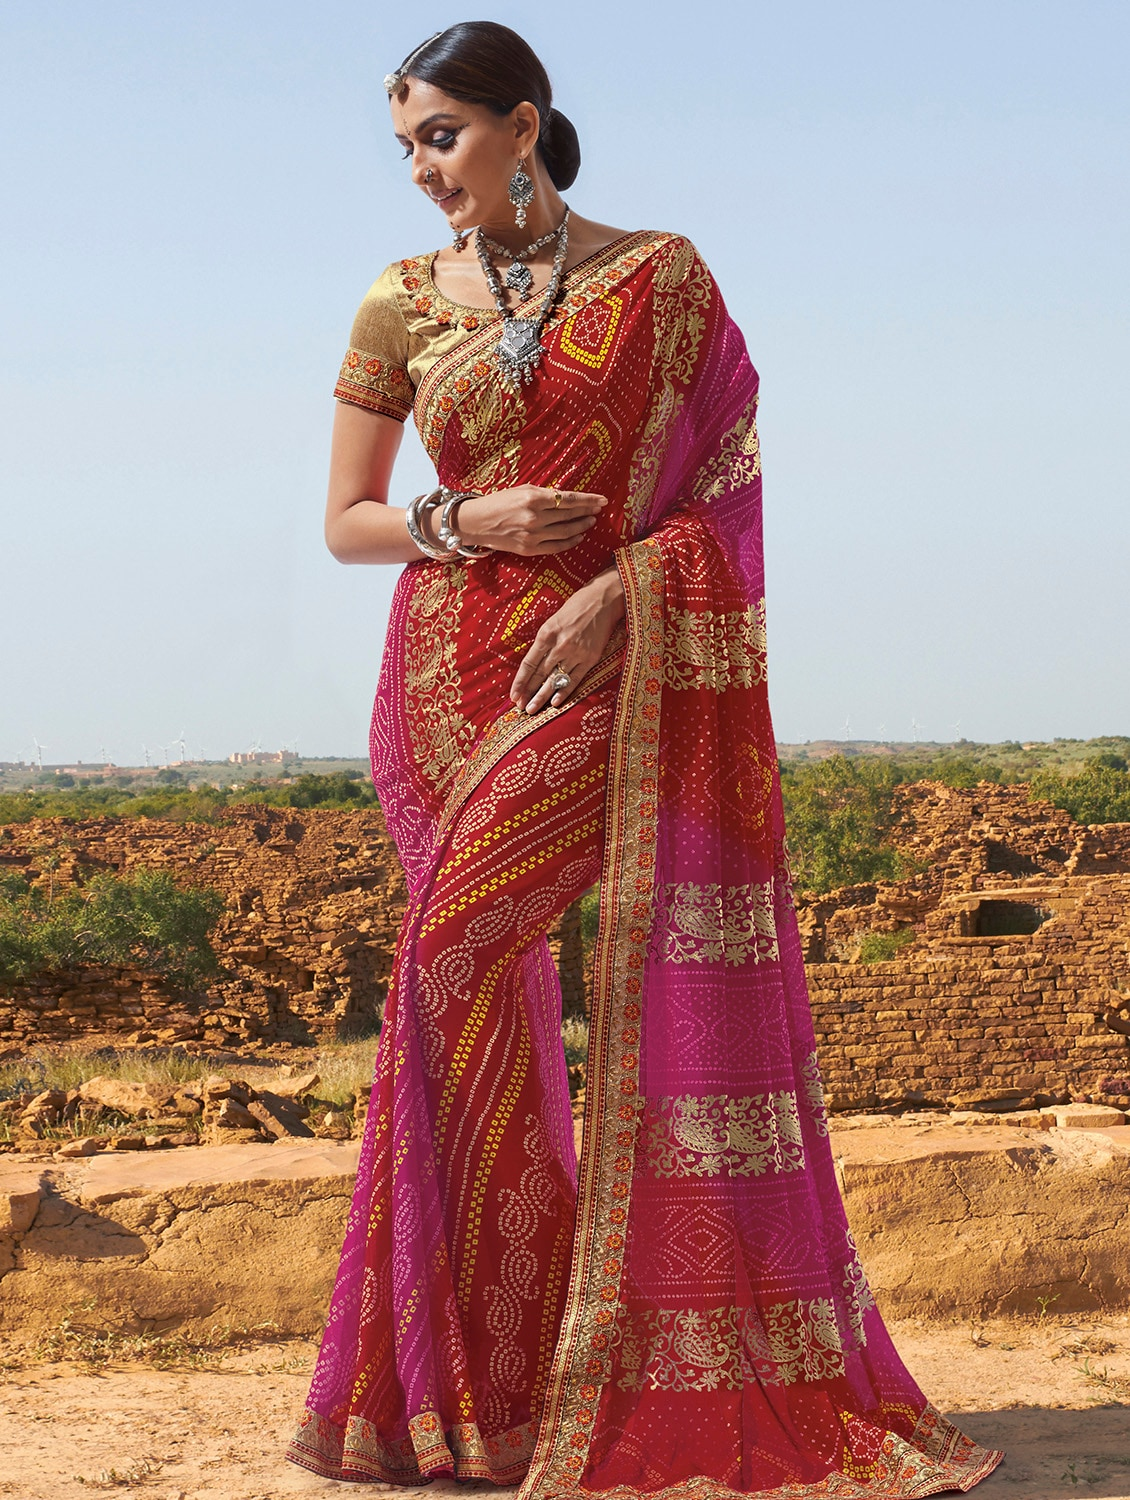 912c7f1c04 ... embroidered lace border bandhani saree with blouse - 15807976 - Zoom  Image - 1